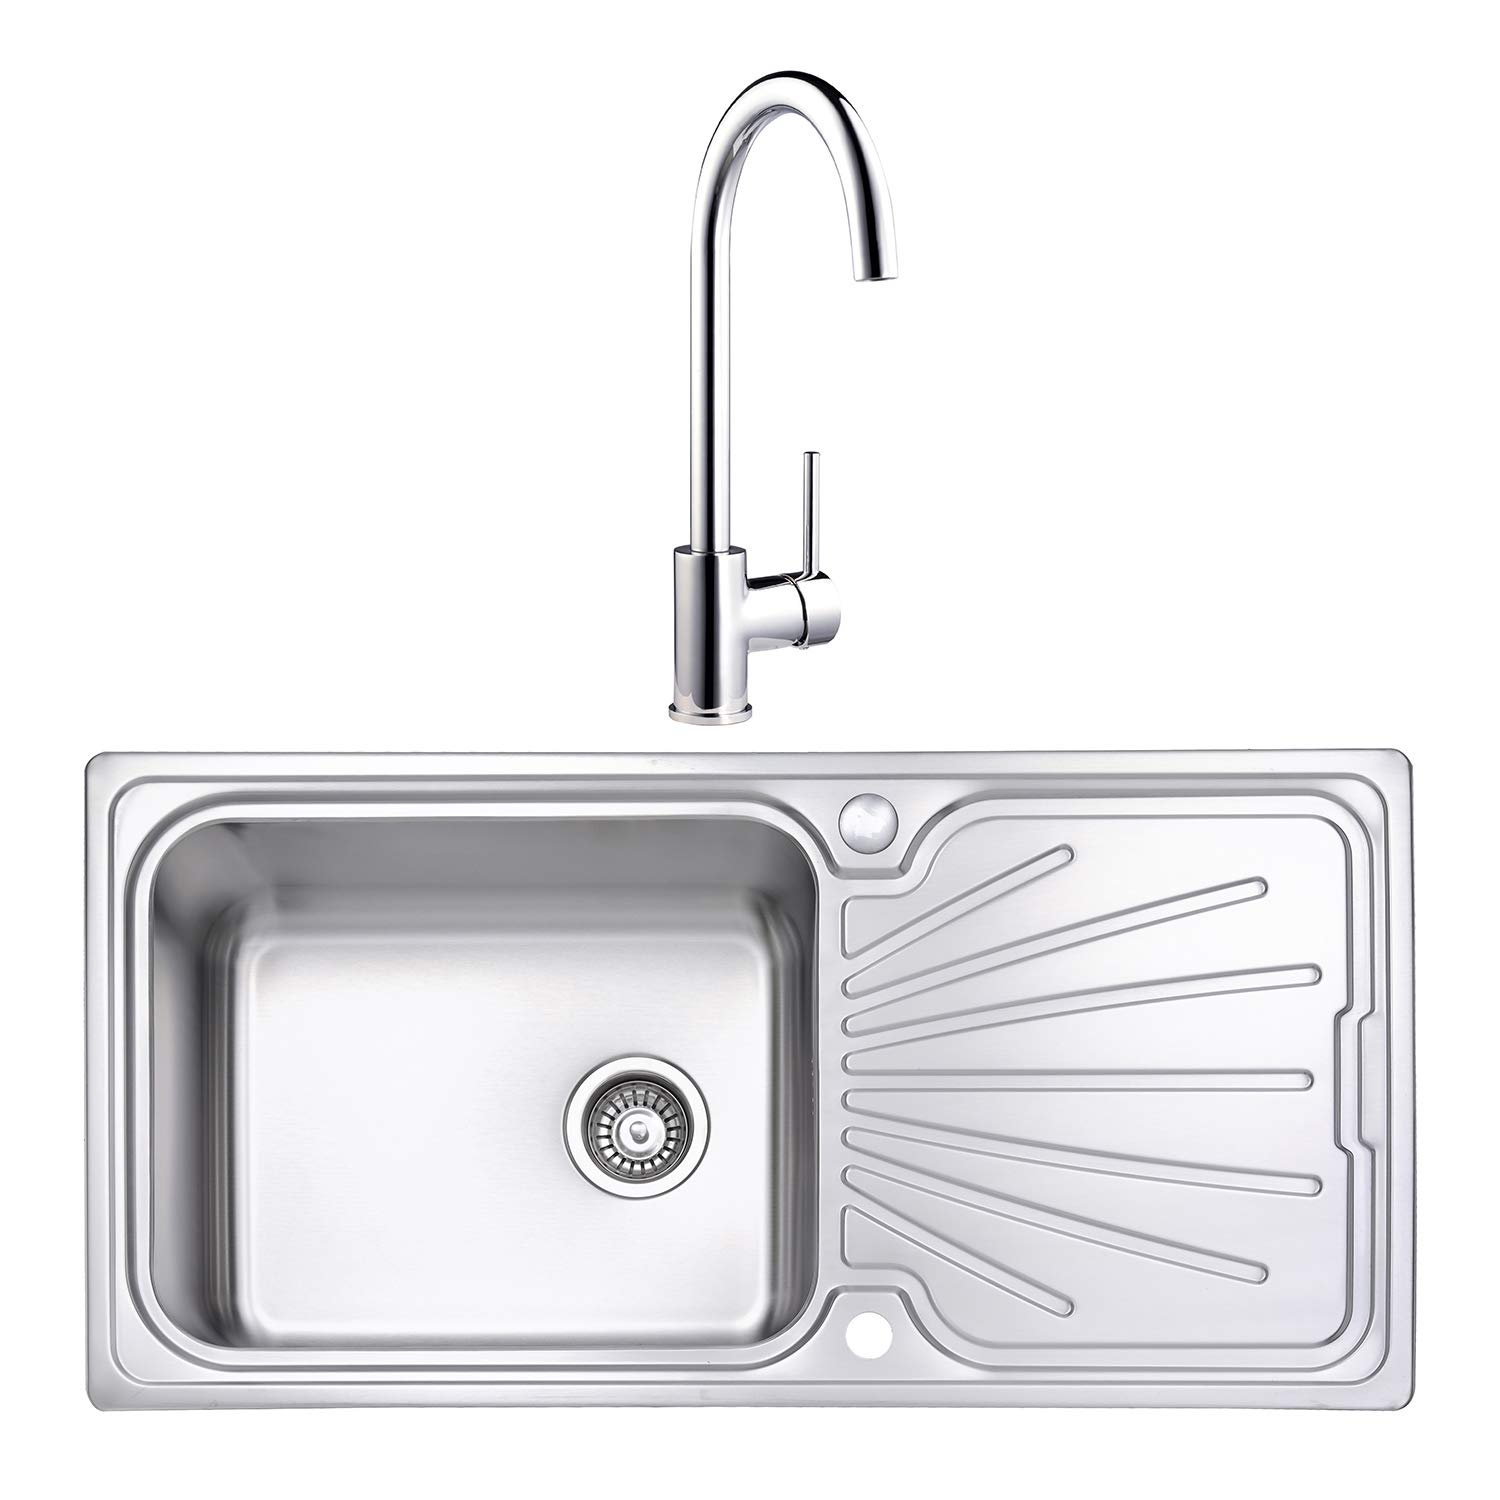 Jass ferry 1000 x 500 mm quality stain finish stainless steel kitchen sink large bowl inset reversible drainer with polished chrome single double lever taps